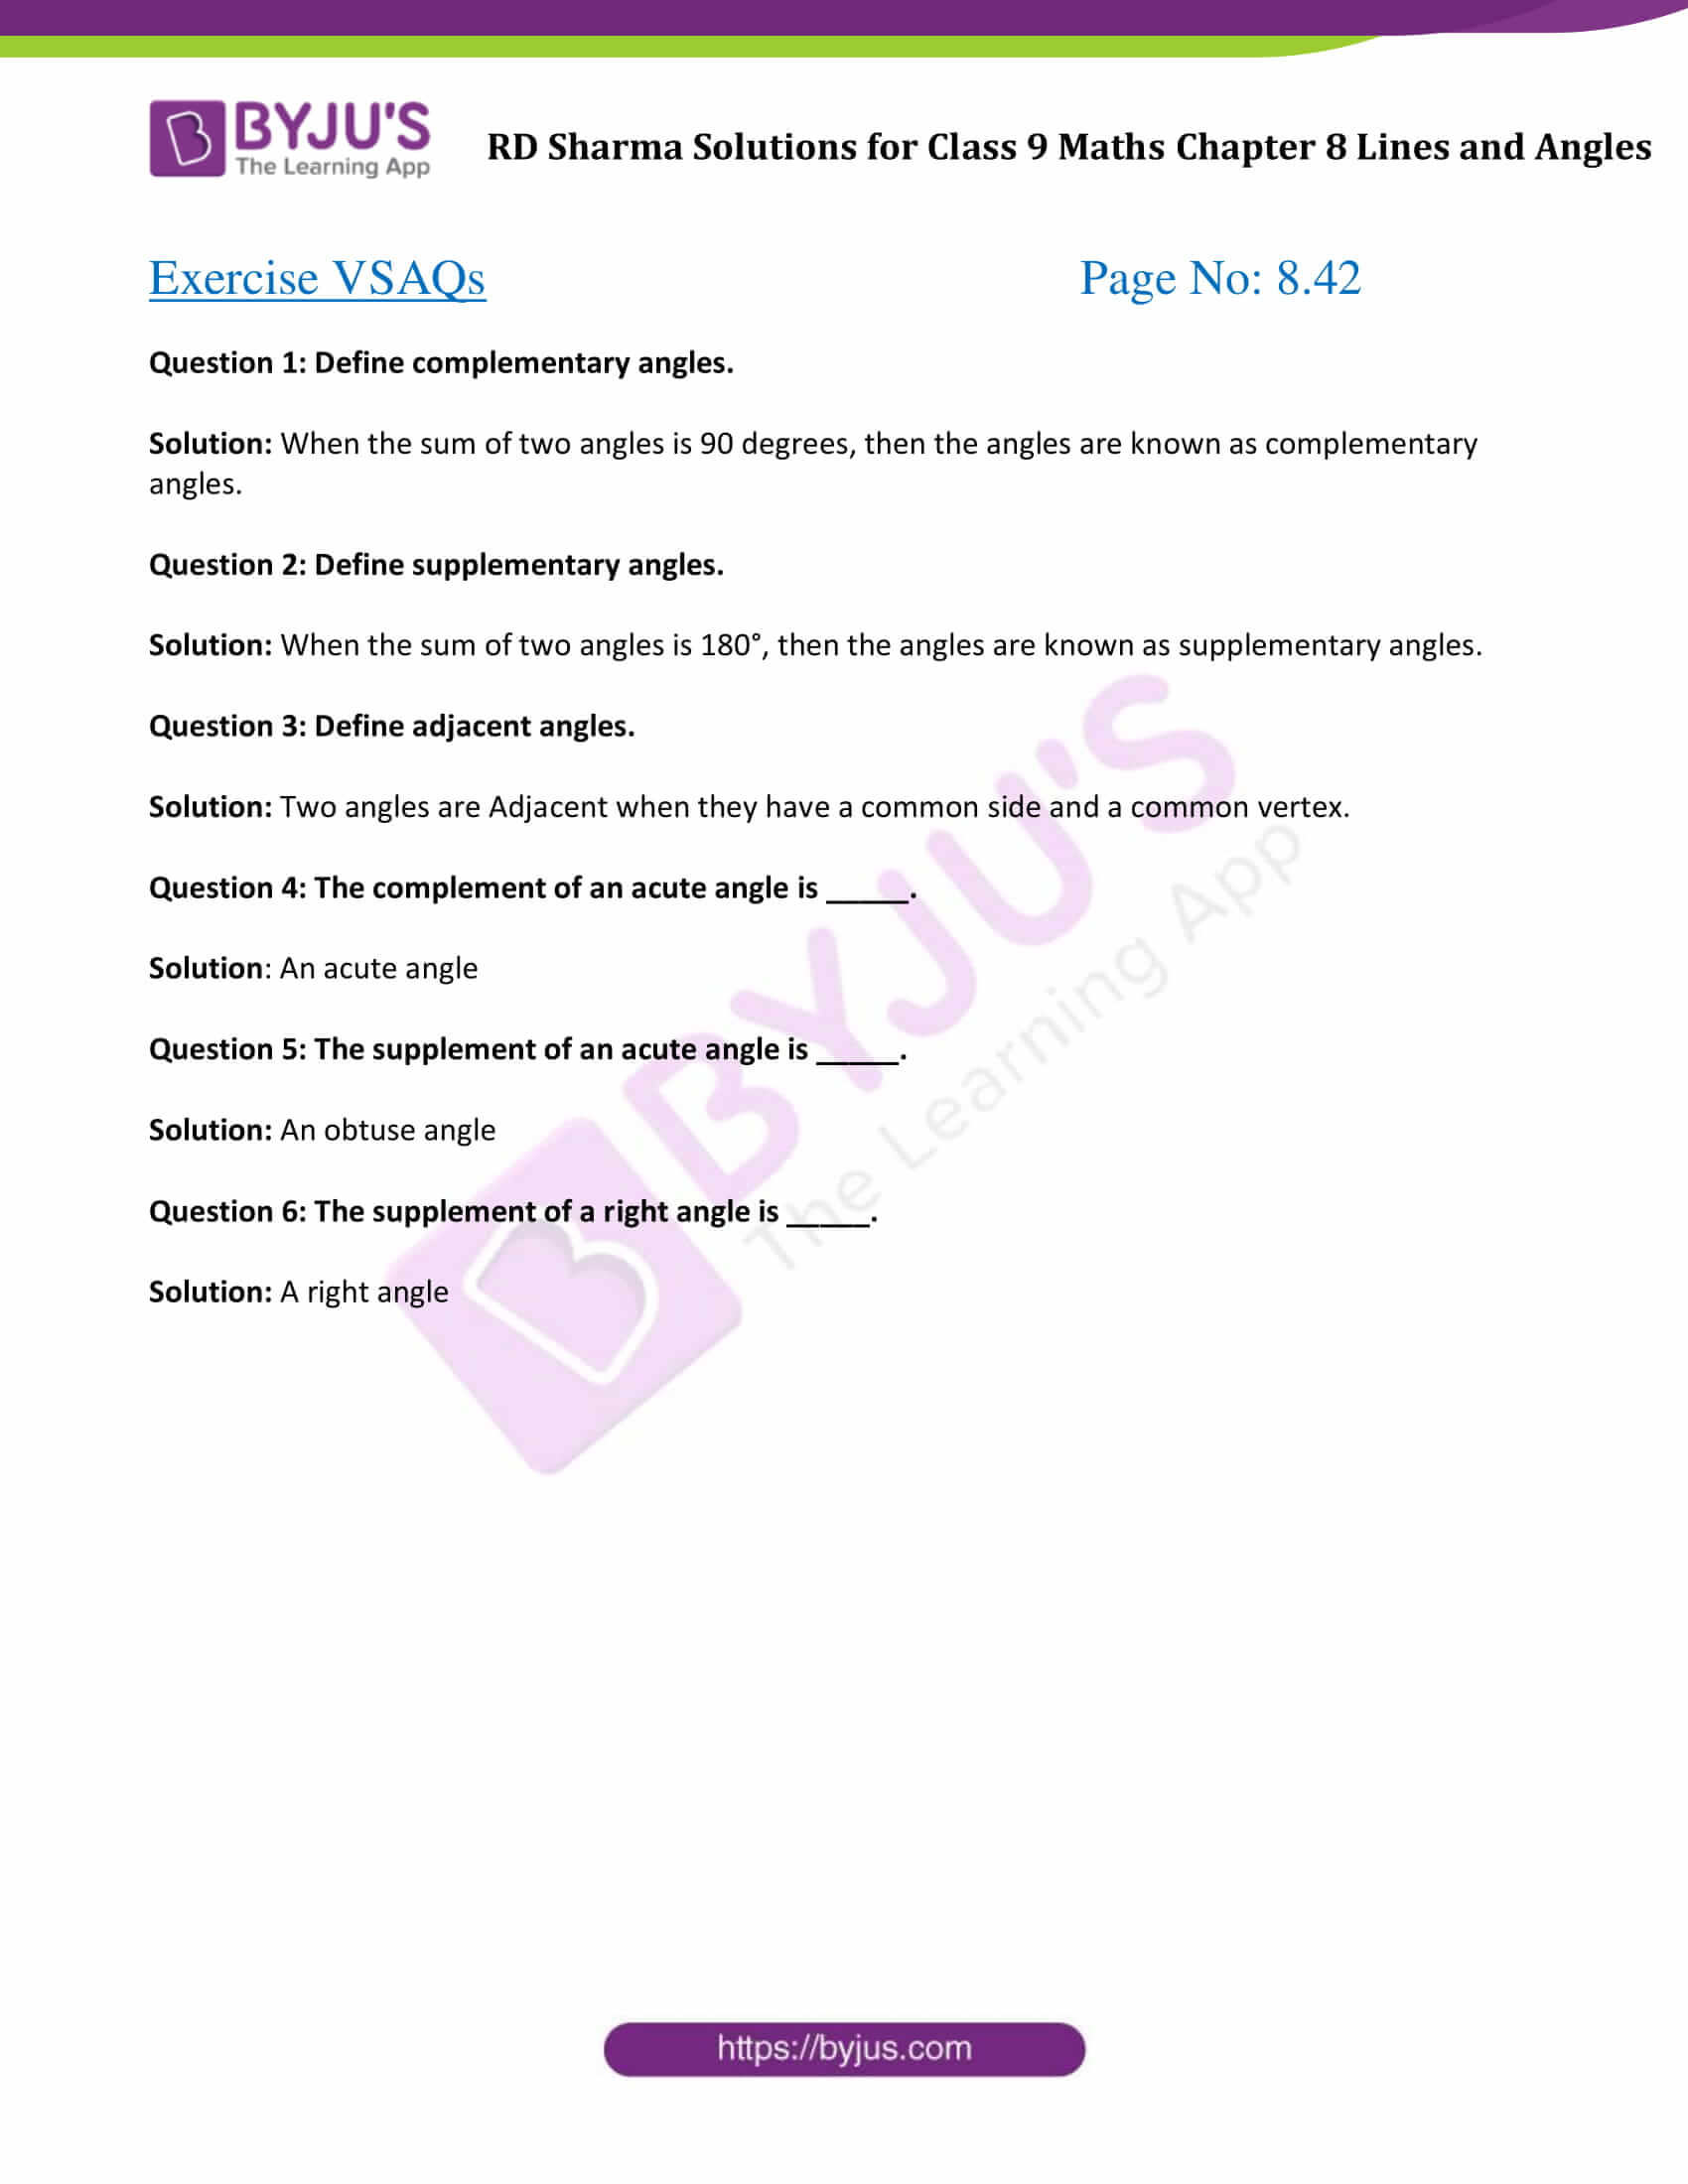 RD Sharma Solution class 9 Maths Chapter 8 Lines and Angles 24